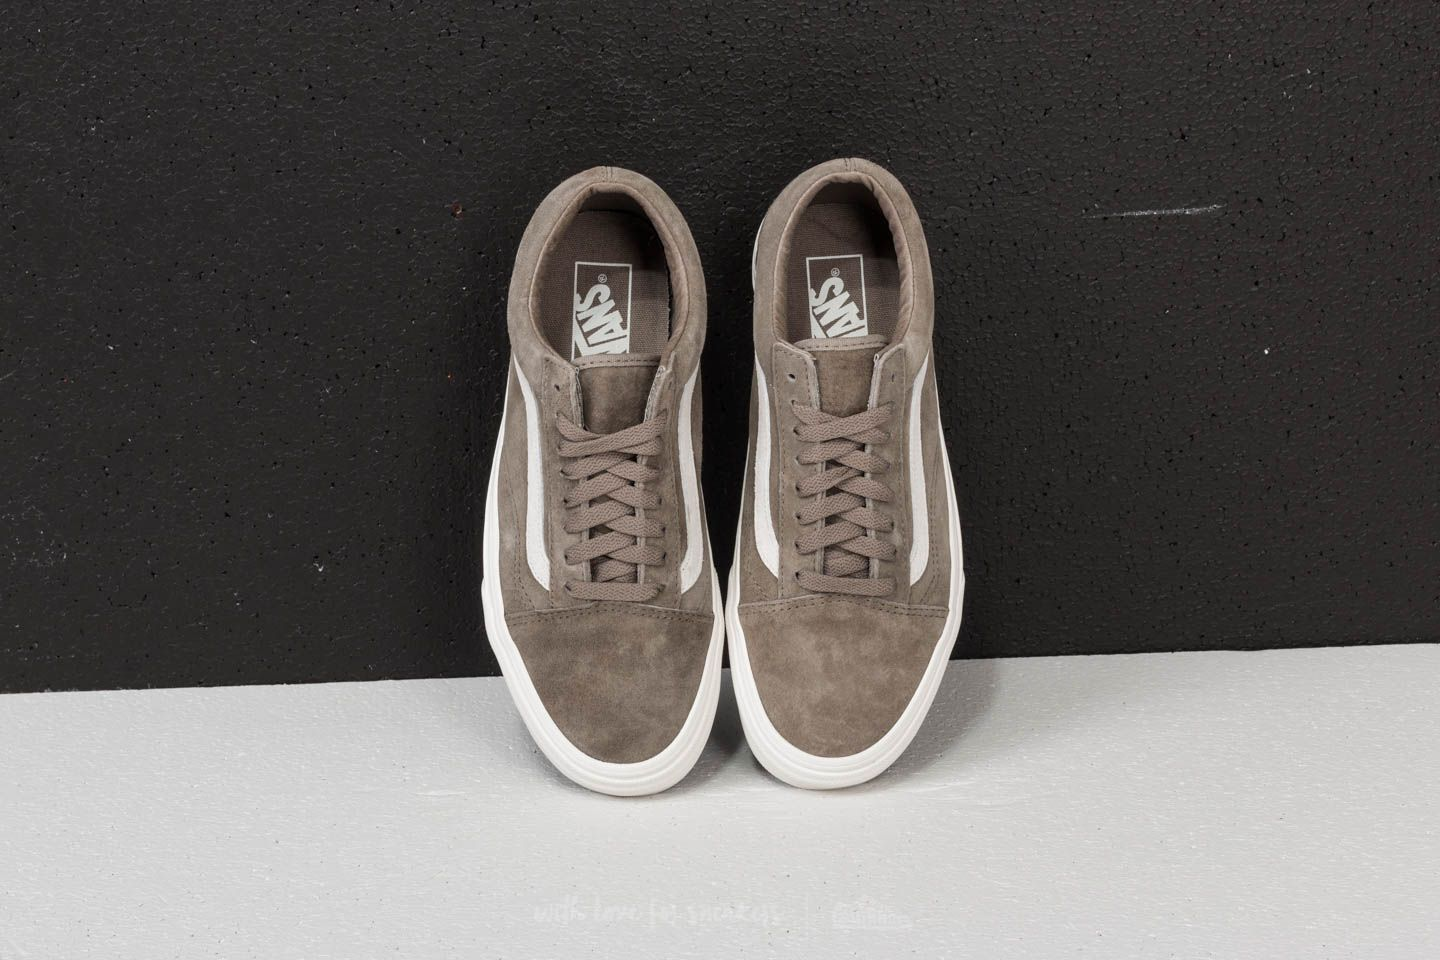 Vans Old Skool 'Pig Suede' Shoes Fallen RockBlanc